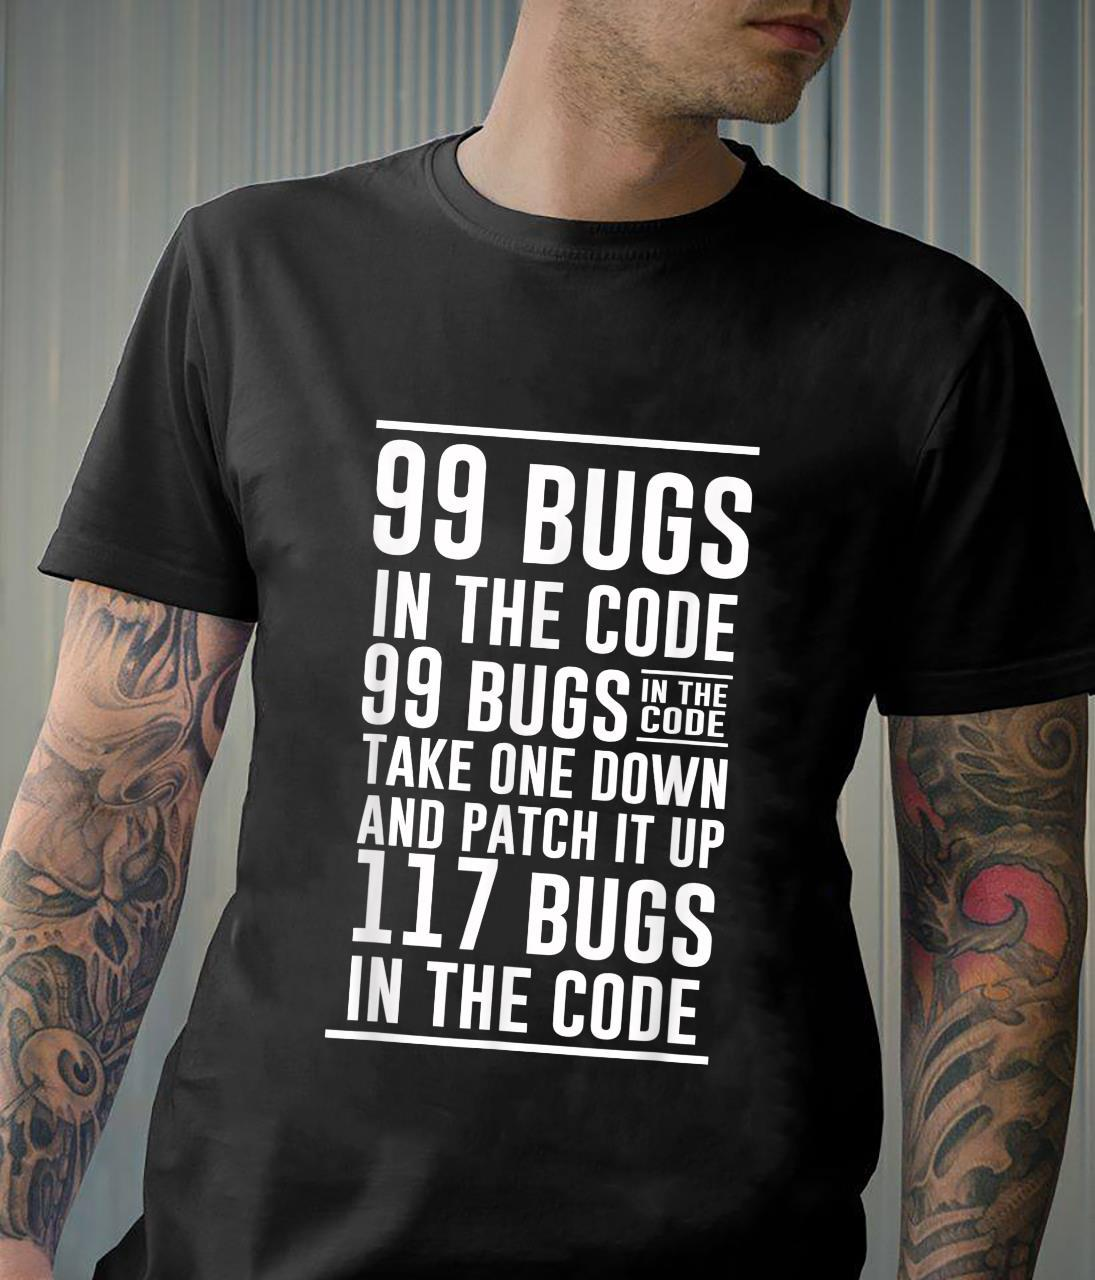 99 bugs in the code quote Shirt